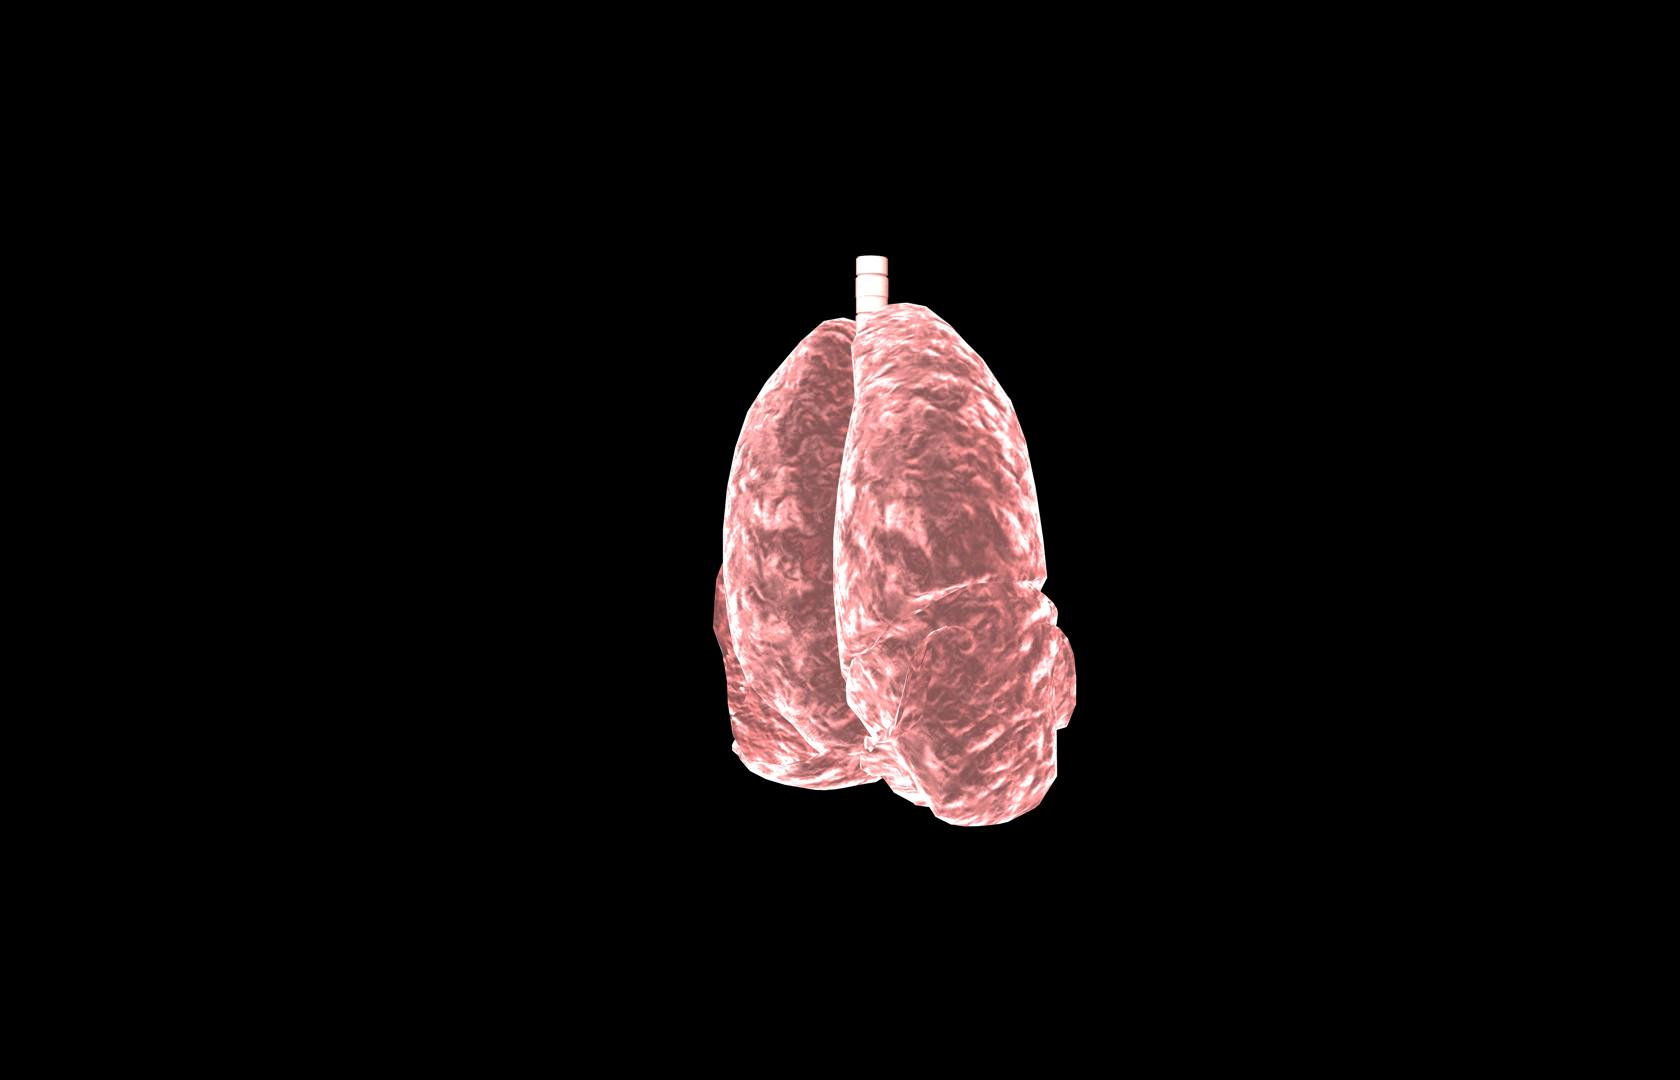 Lung 3d Model With Lobes Medically Accurate 3d Model